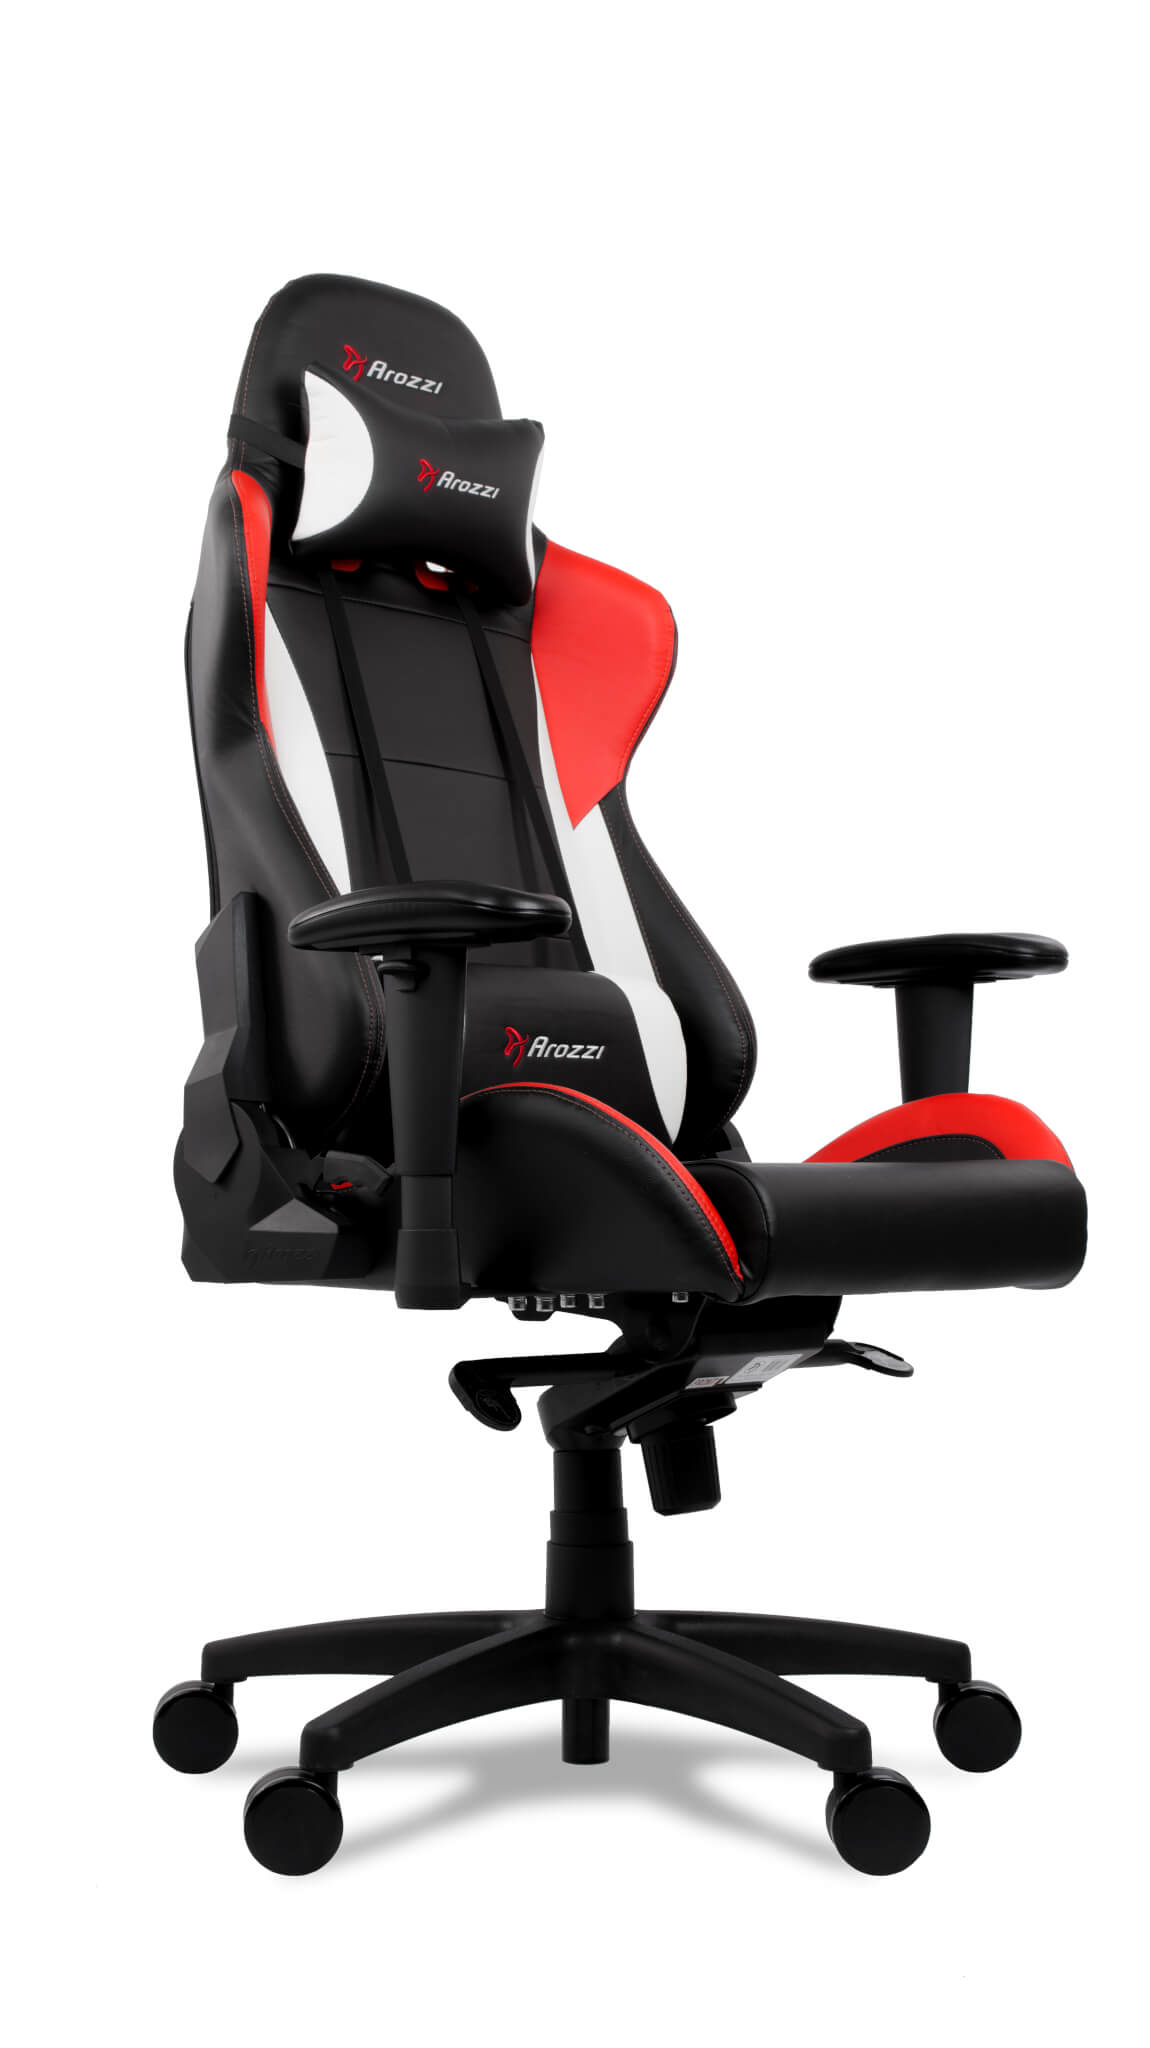 Arozzi Verona Pro v2 gaming chair contest